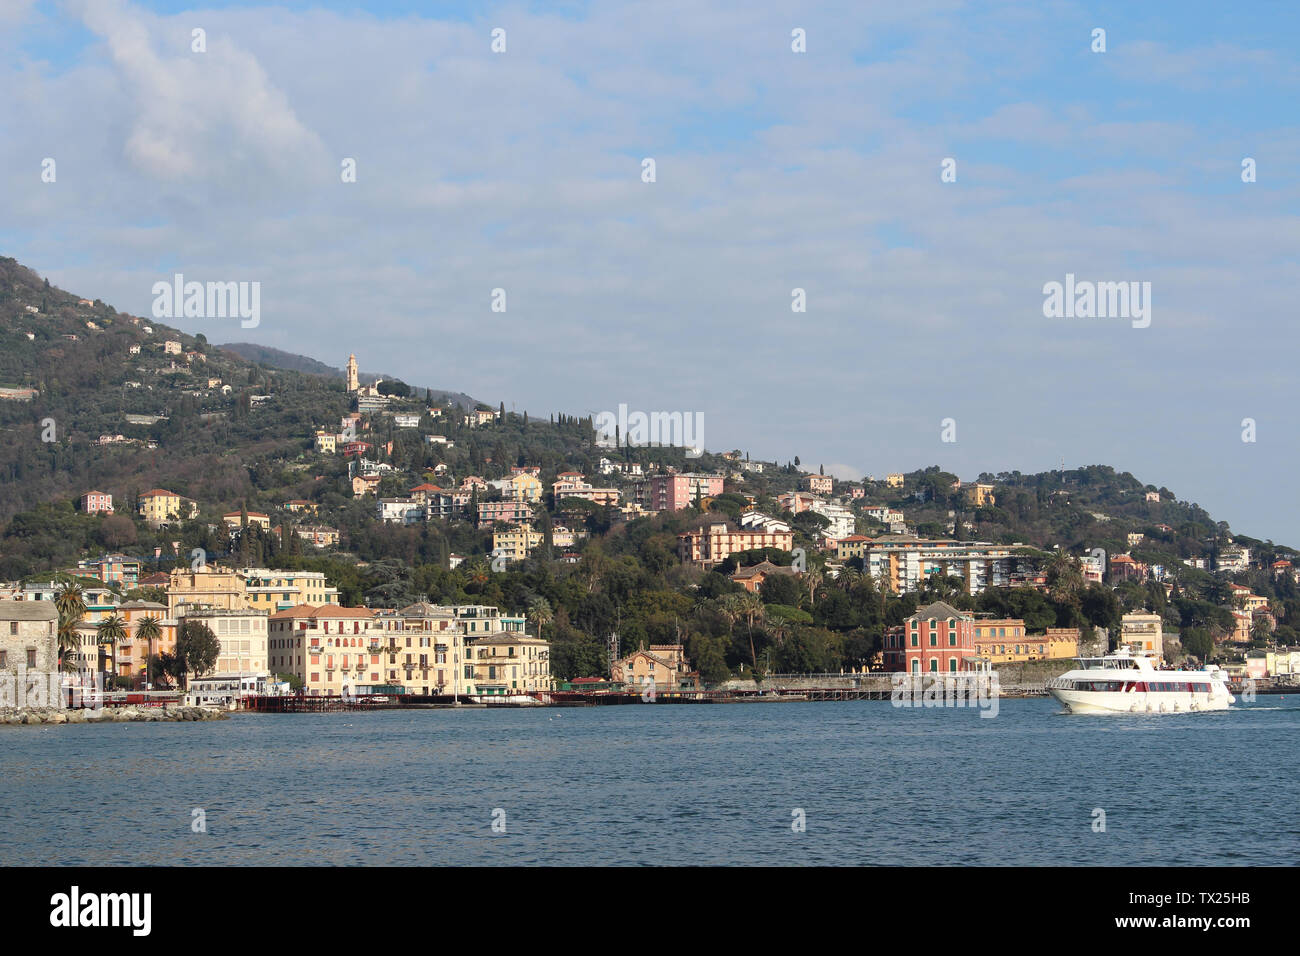 Rapallo, Italy - 03 27 2013: the Gulf of Tigullio. View of the streets of Rapallo. - Stock Image